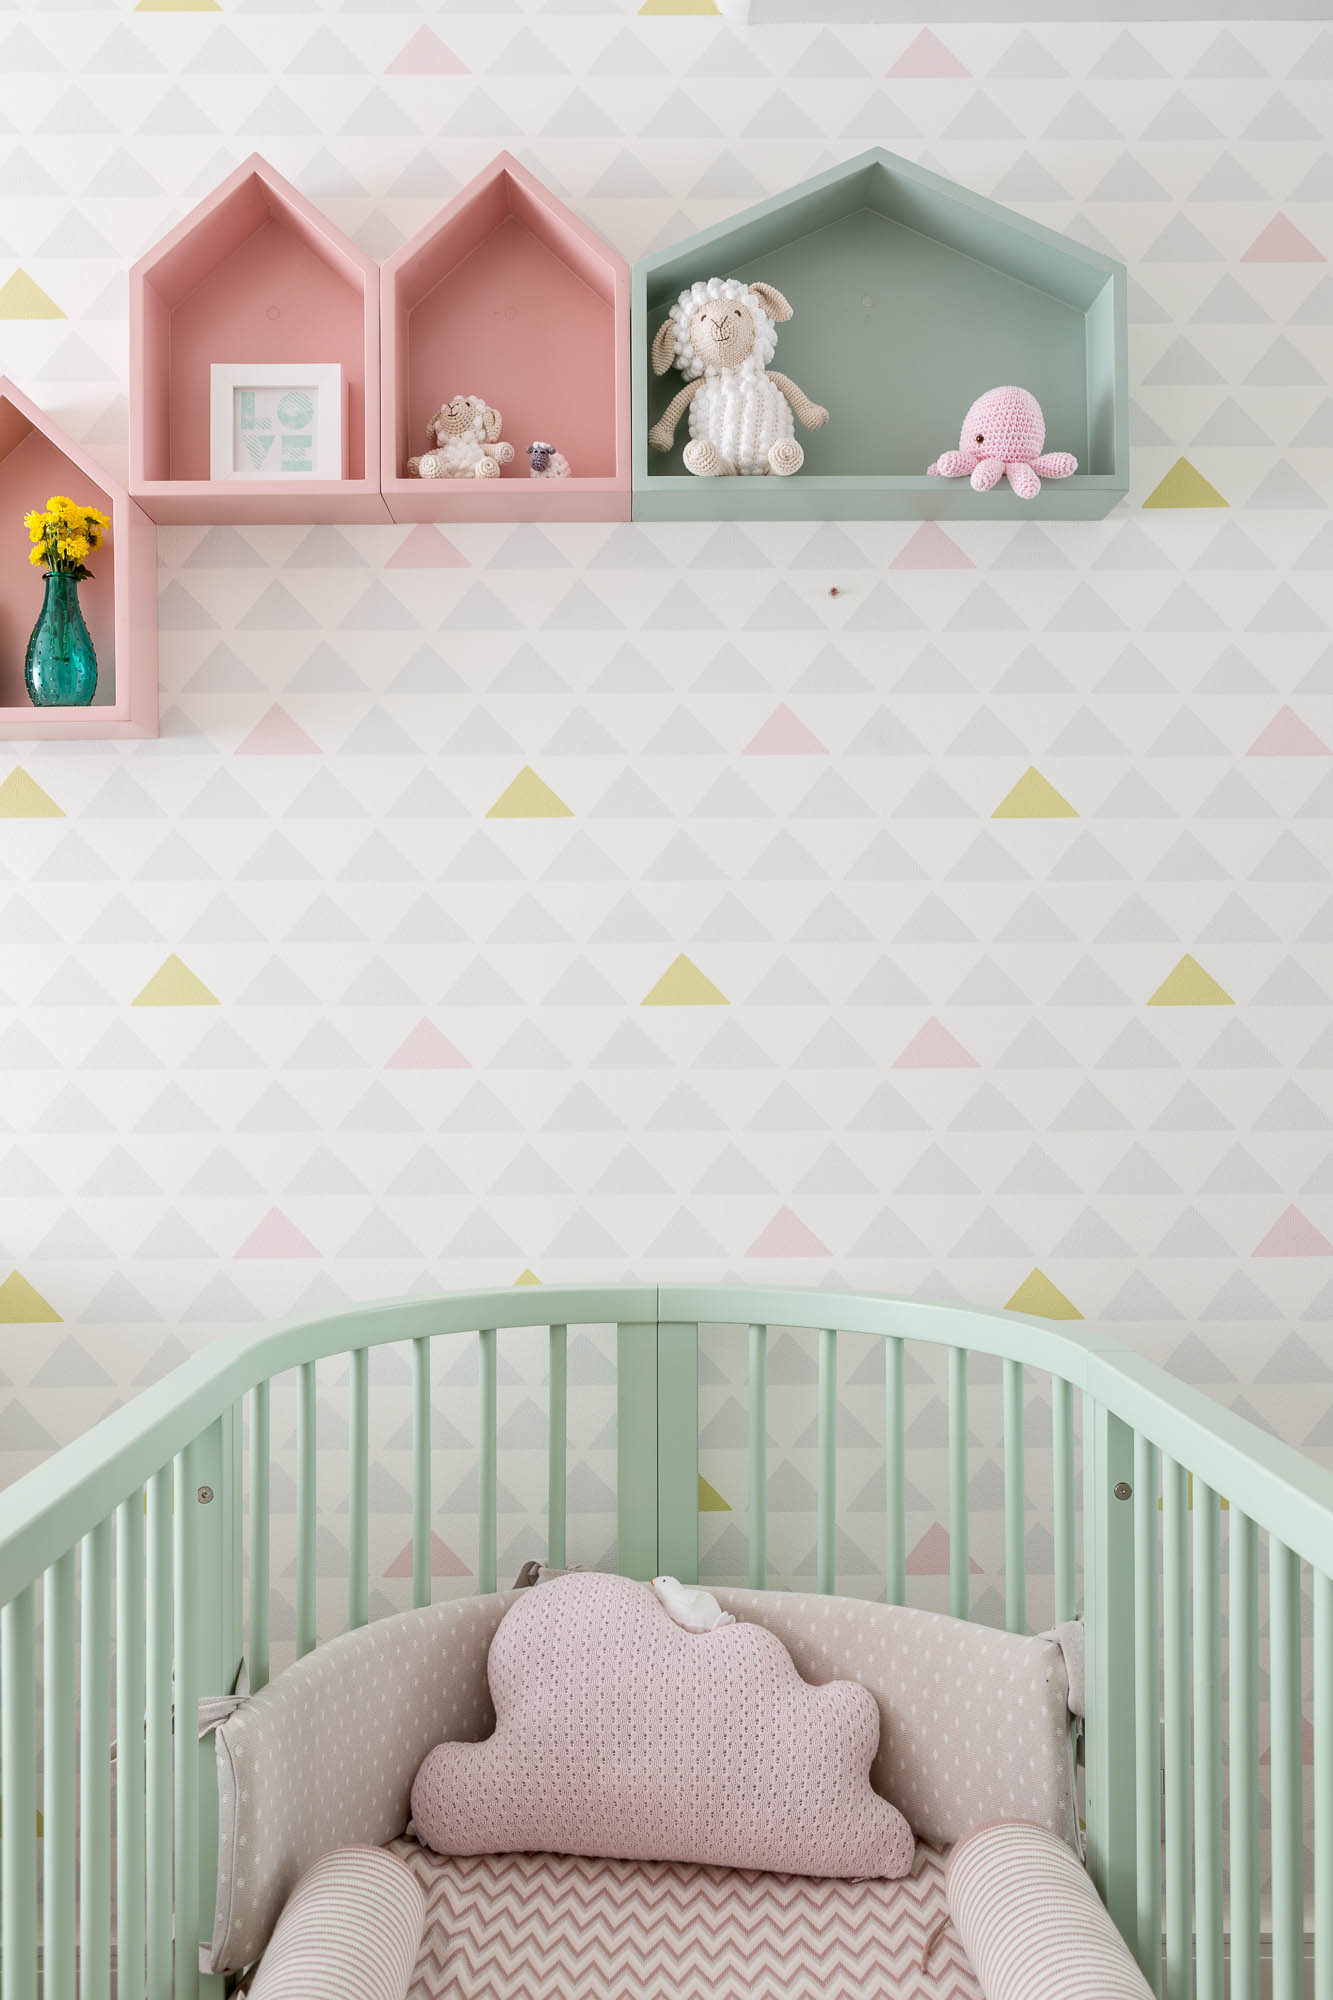 Quarto de beb moderno com papel de parede geom trico for Papel pared bebe